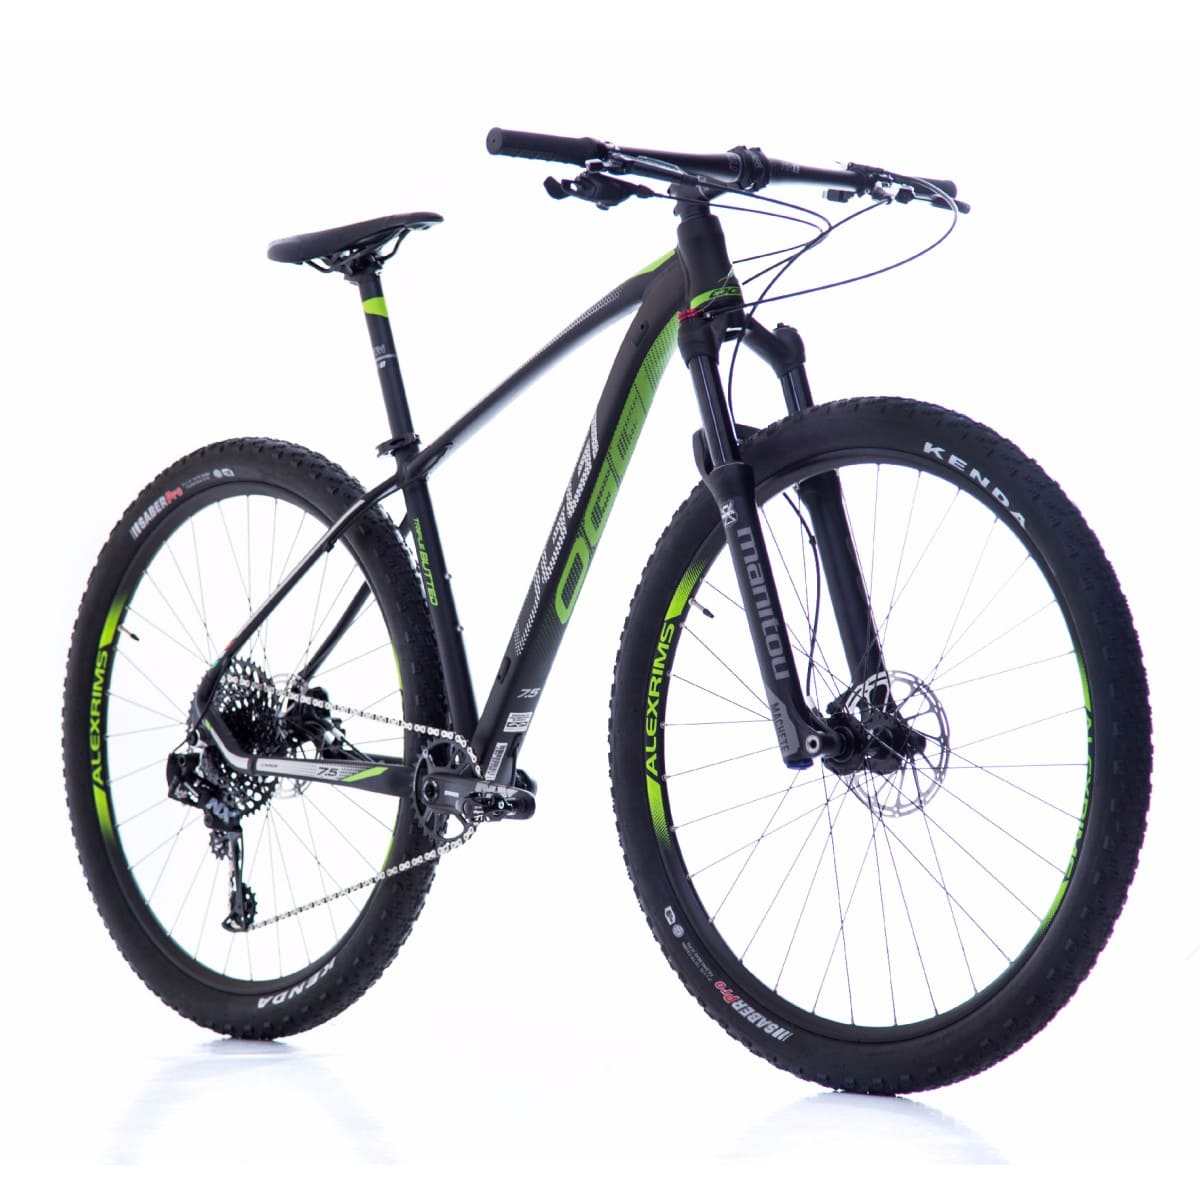 Bicicleta Oggi Big Wheel 7.5 Big Whell Nx Eagle 12 vel 2019